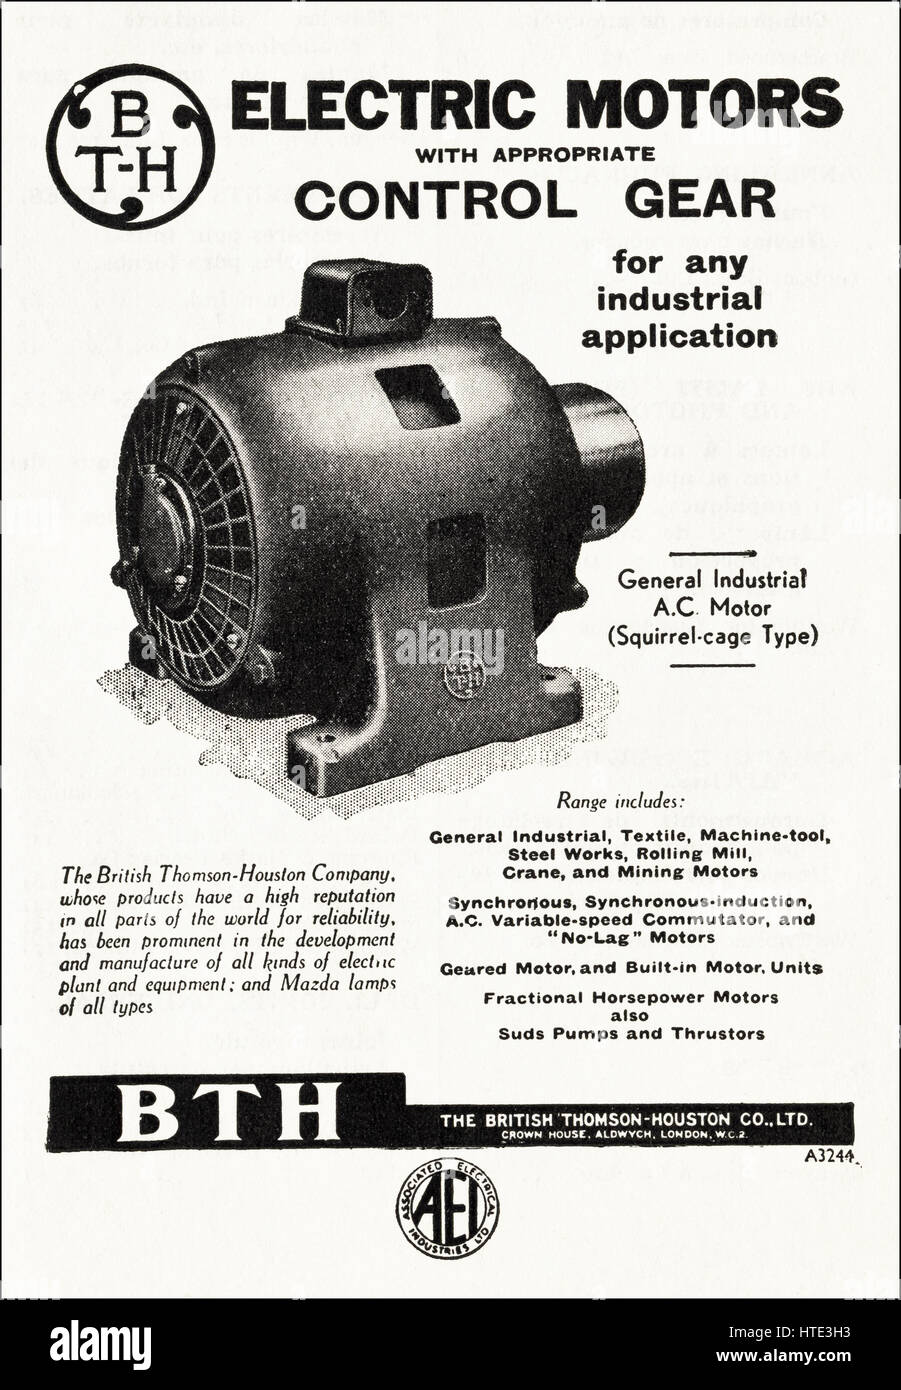 1940s old original vintage industrial advertisement dated 1943 advertising electric motors by BTH The British Thomson - Stock Image